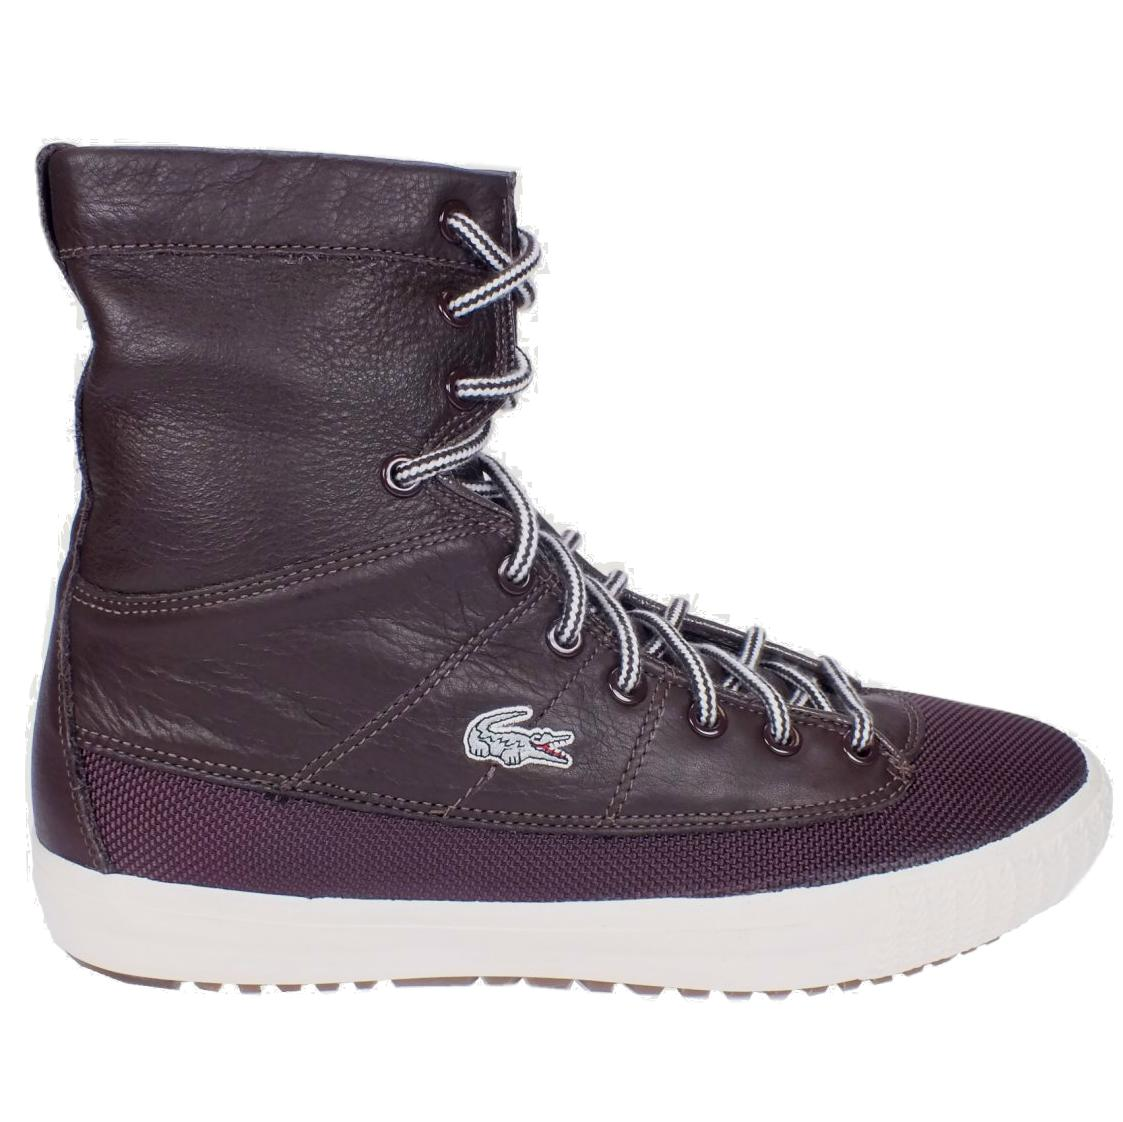 lacoste avignon lb schuhe stiefel high top sneakers herren braun winter ebay. Black Bedroom Furniture Sets. Home Design Ideas